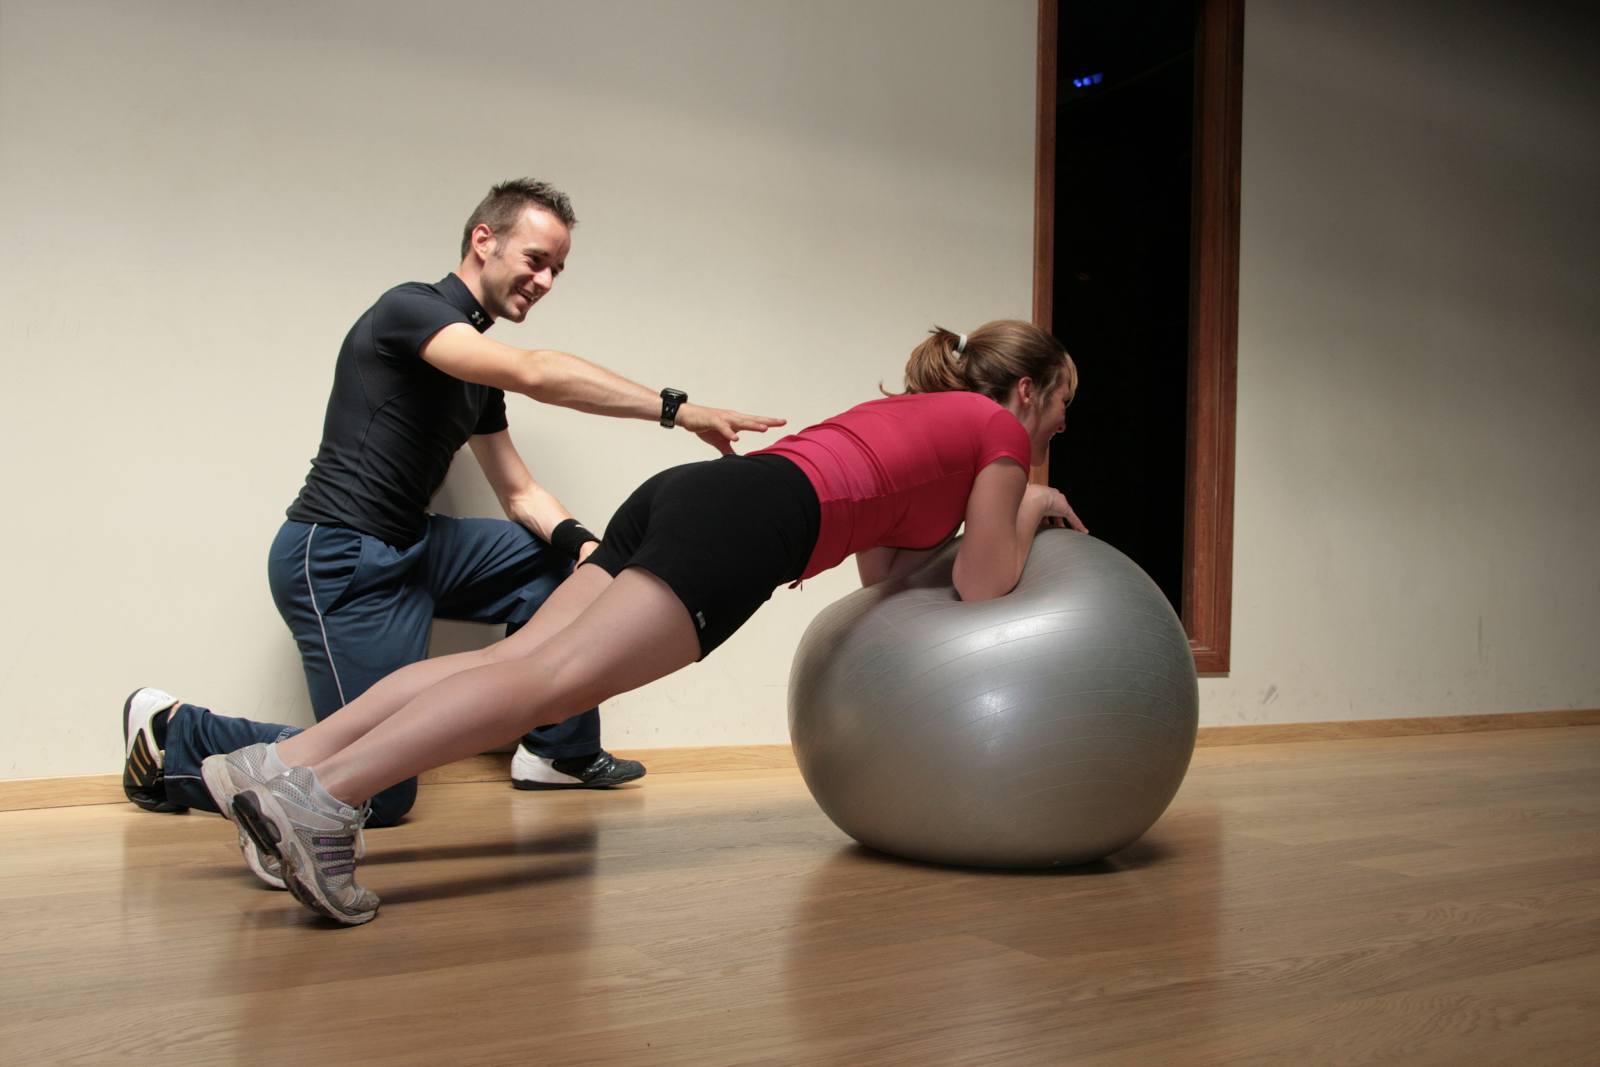 Risking Injury personal trainer balancing with swiss ball